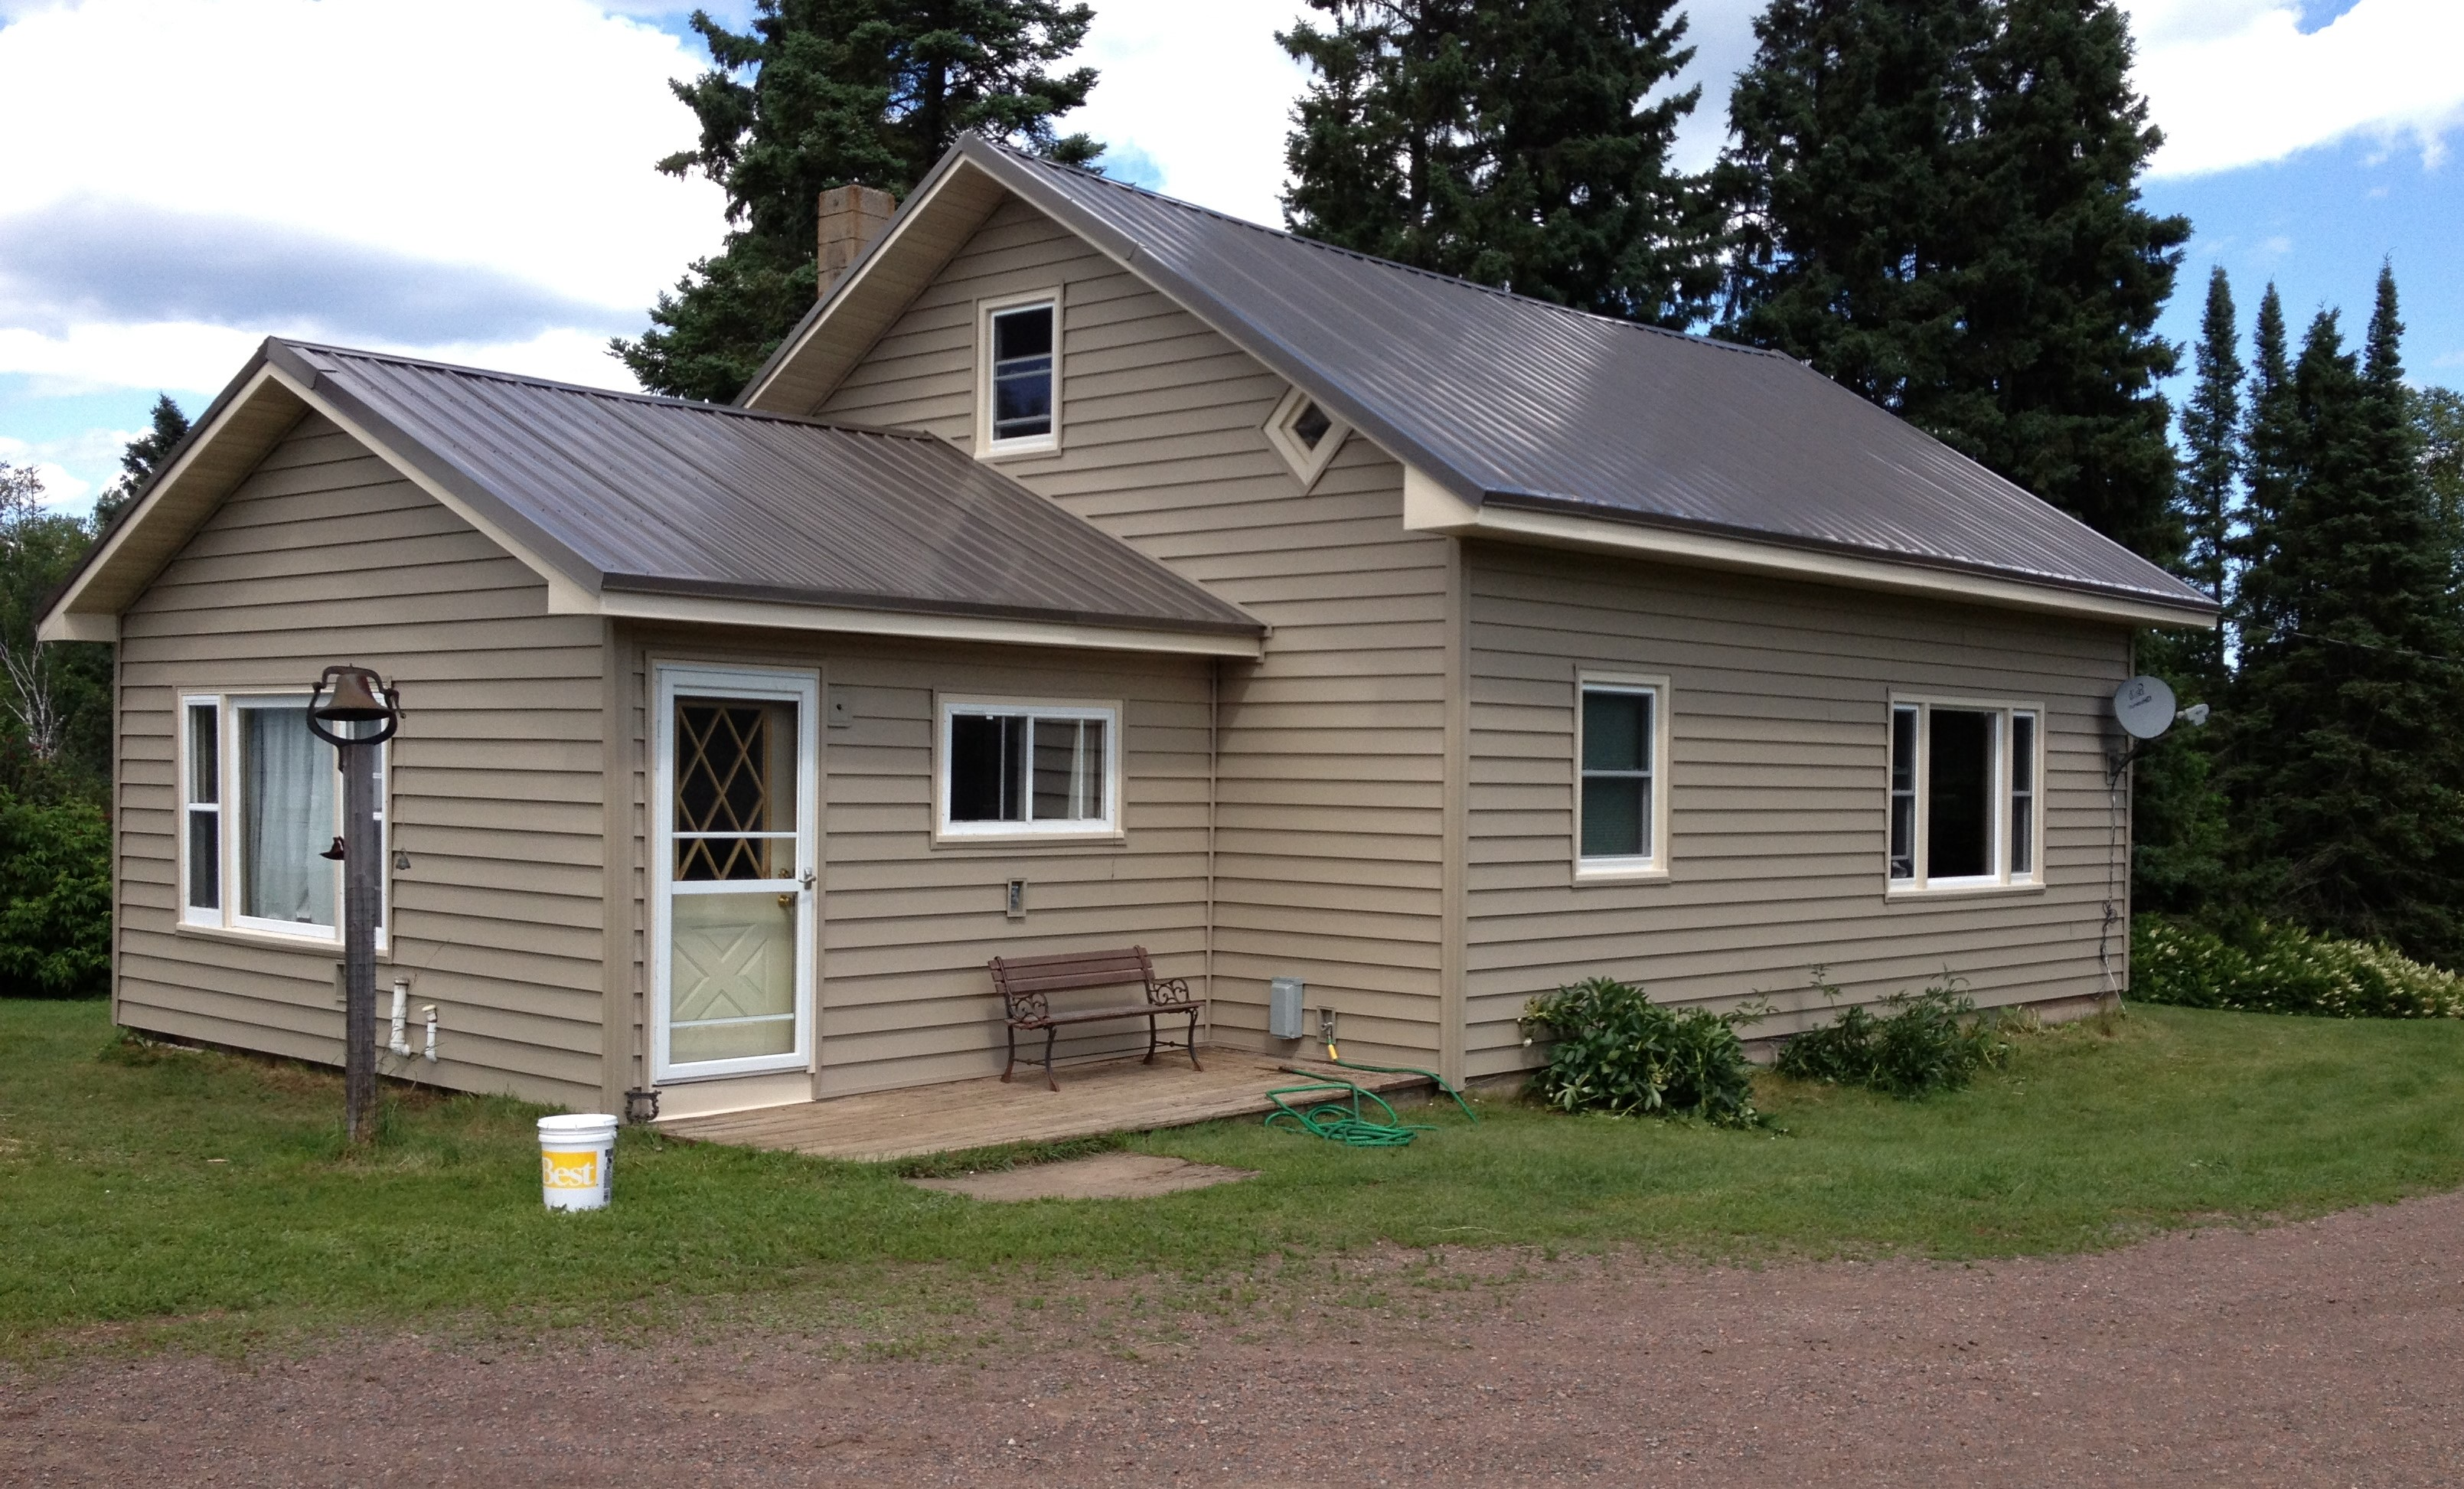 Absalute Vinyl Window & Siding Co | Roofing Contractors in ...